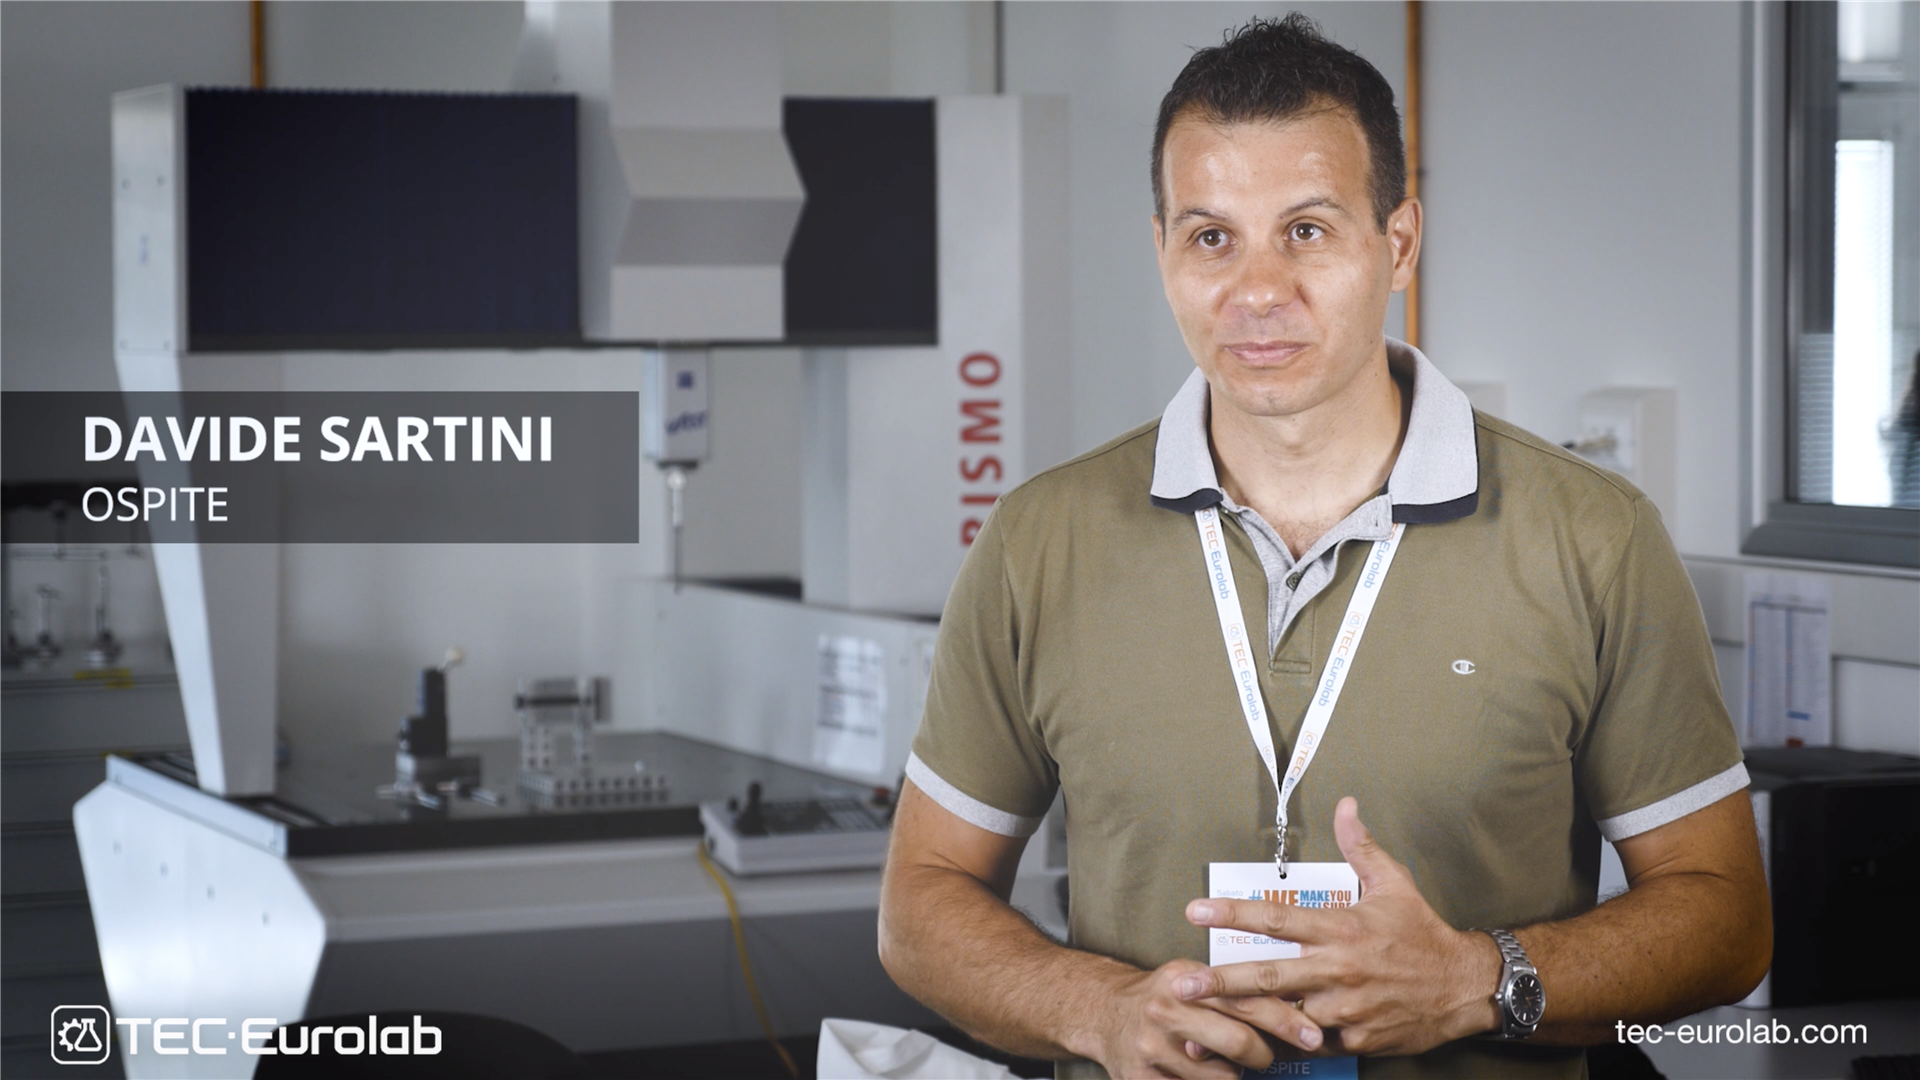 TEC Eurolab <br>Intervista a Davide Sartini - Open Day